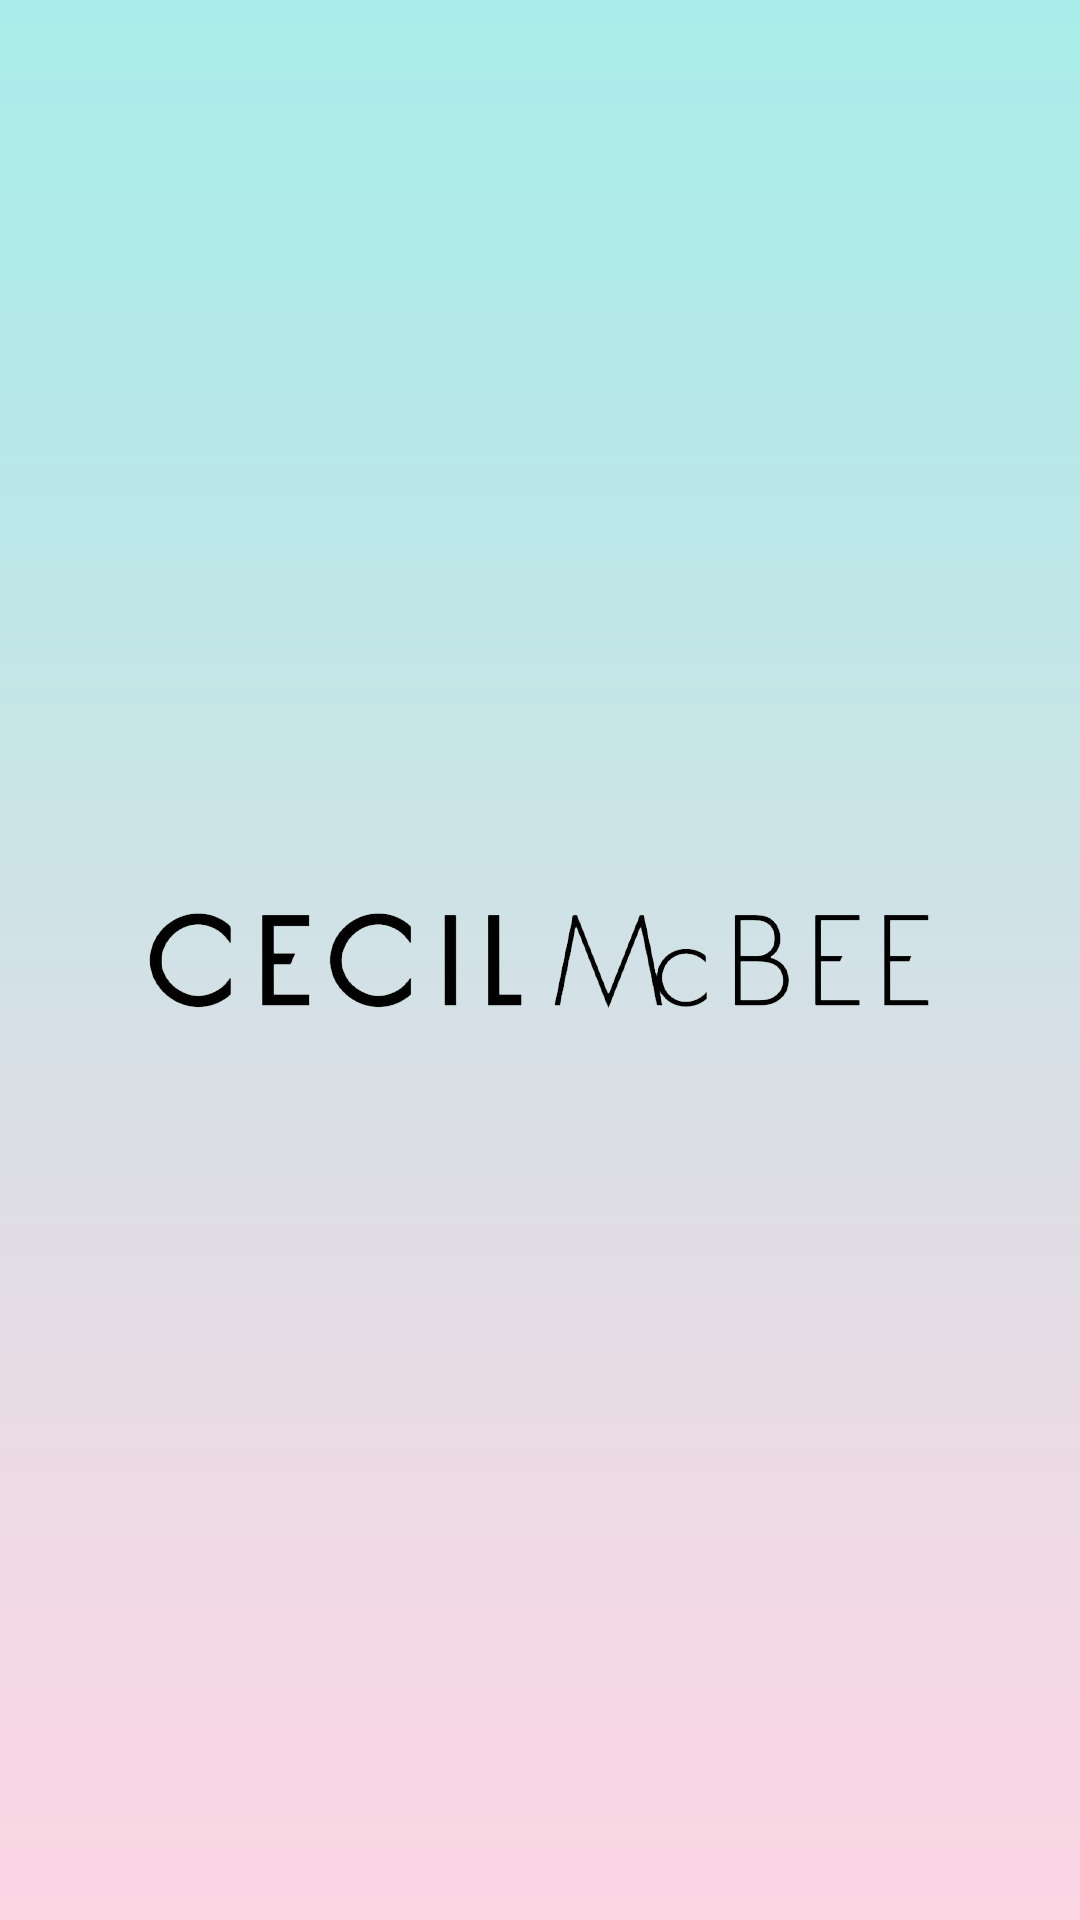 cecil00016 - セシルマクビー[CECIL McBEE]の高画質スマホ壁紙23枚 [iPhone&Androidに対応]